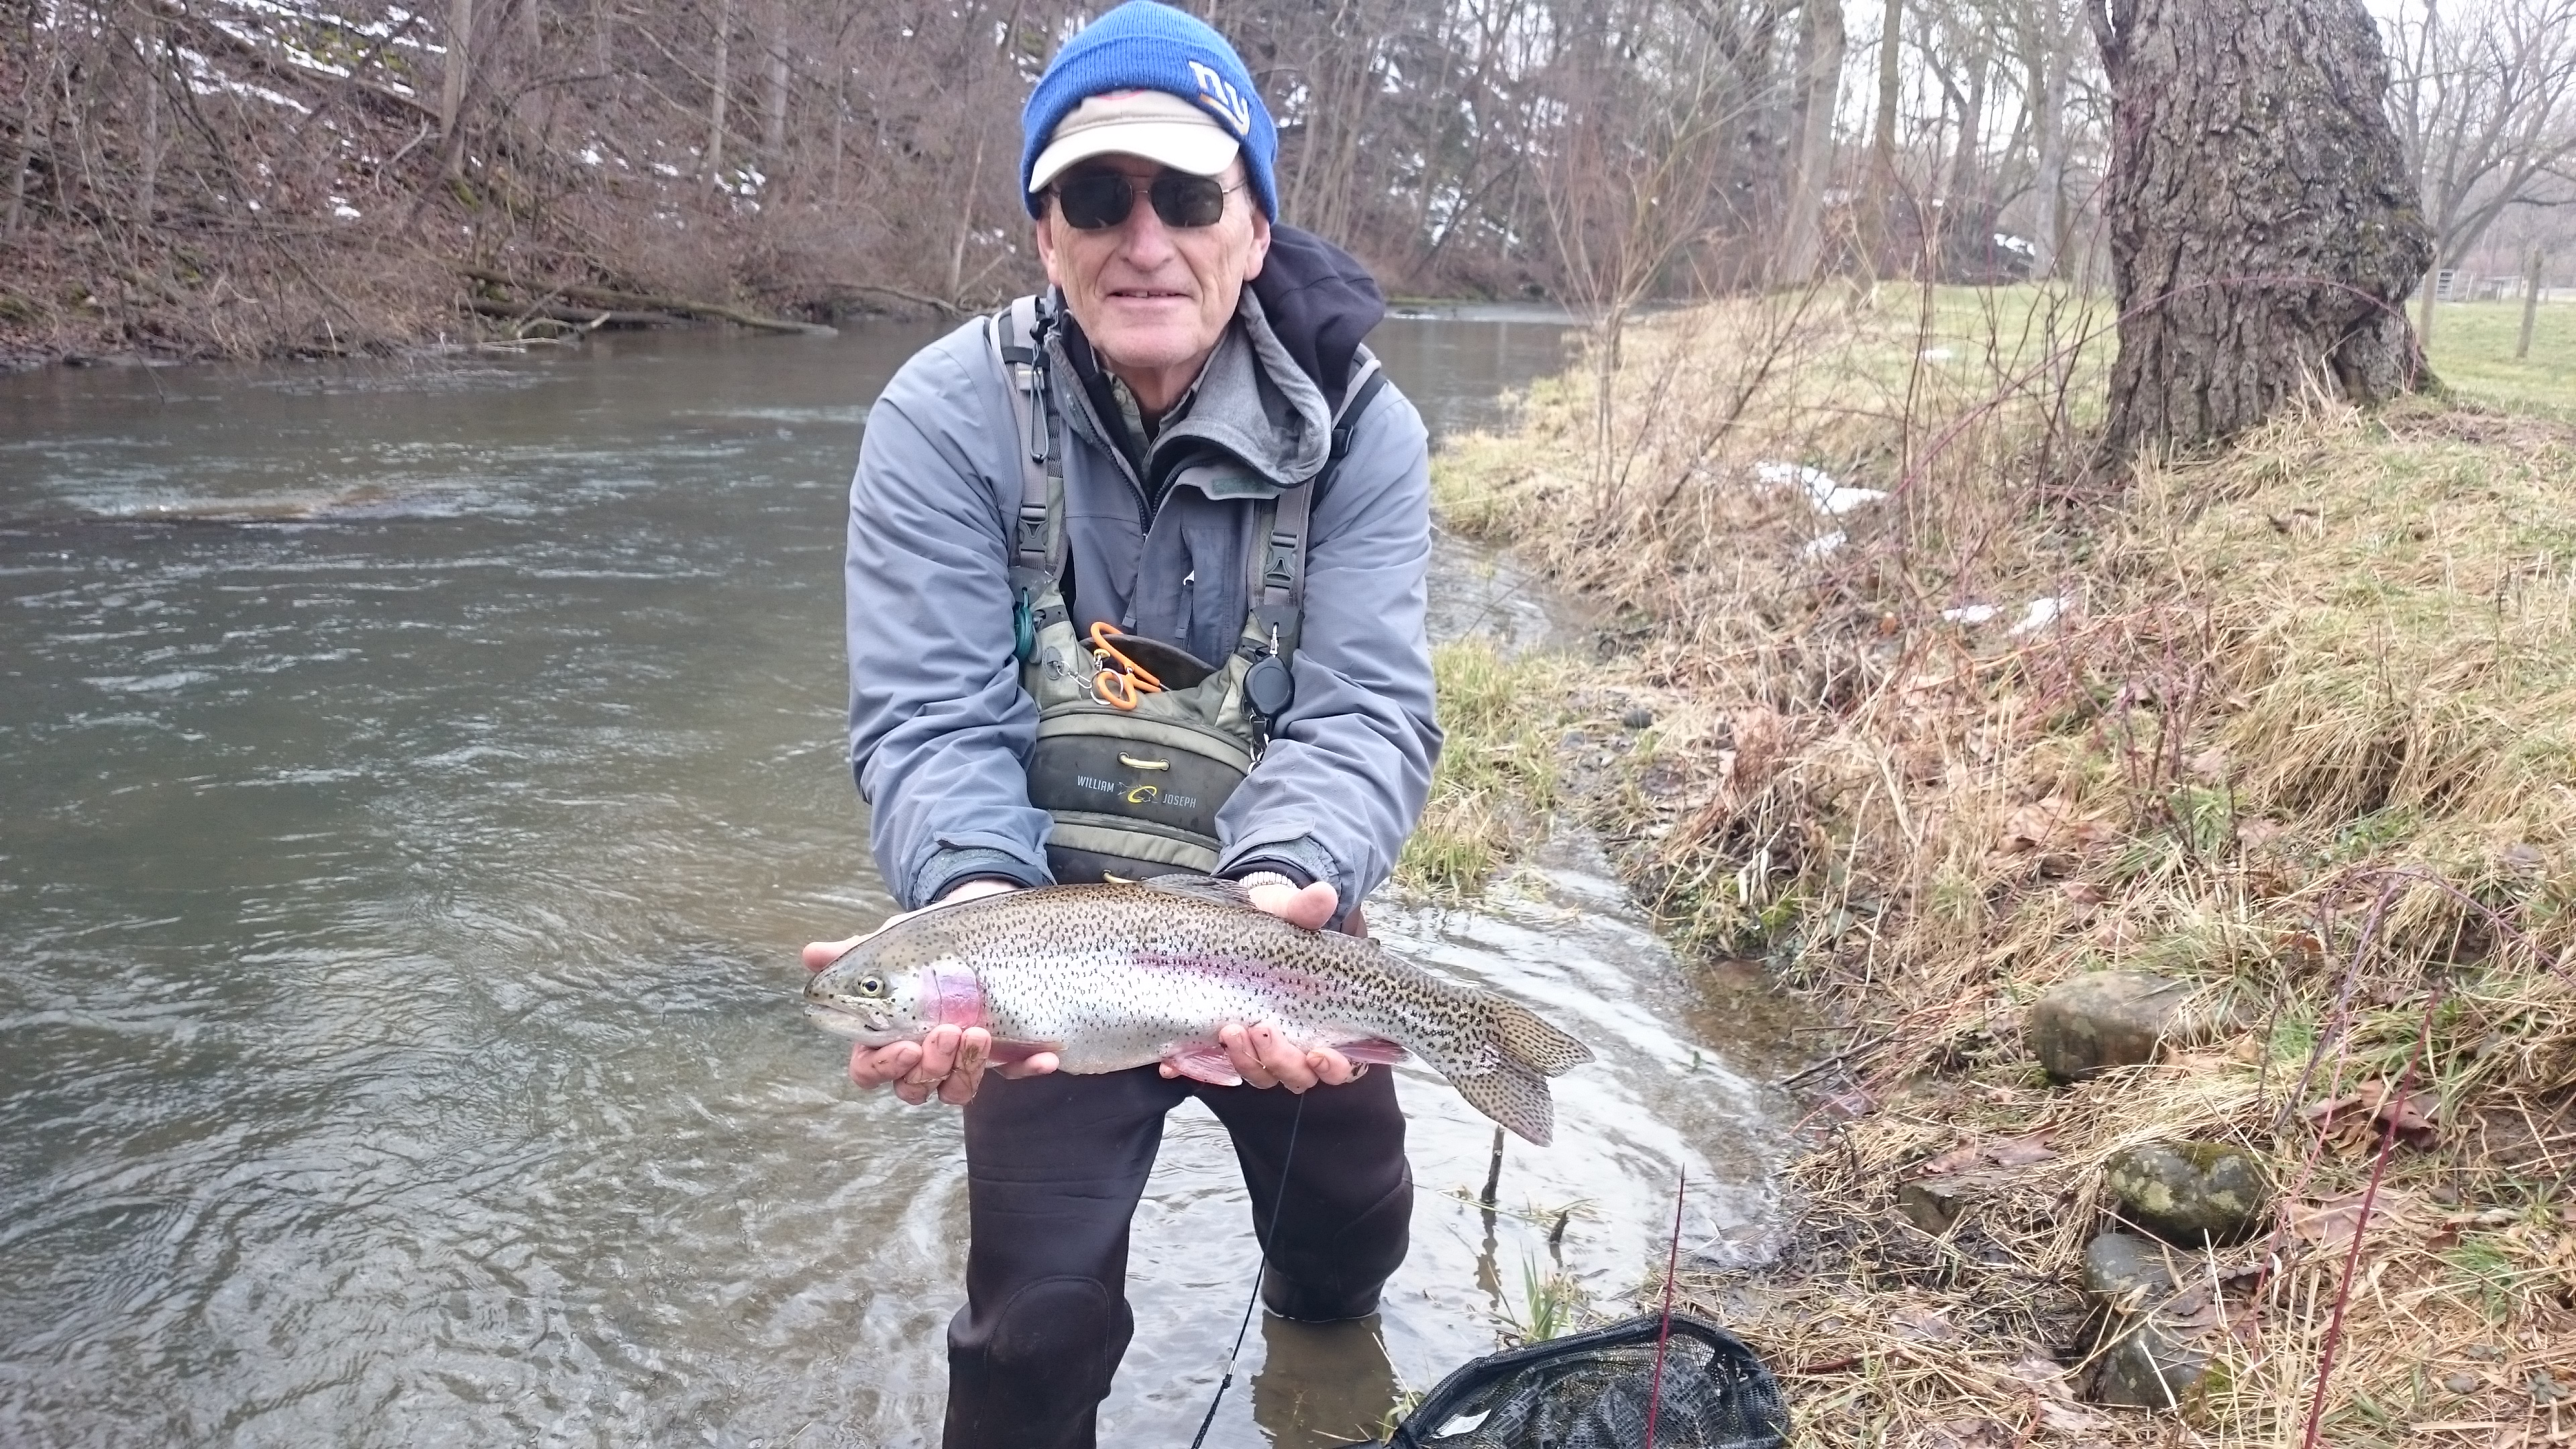 Pa fly fishing spring 2017 first trout of the spring season for Trout fishing pa